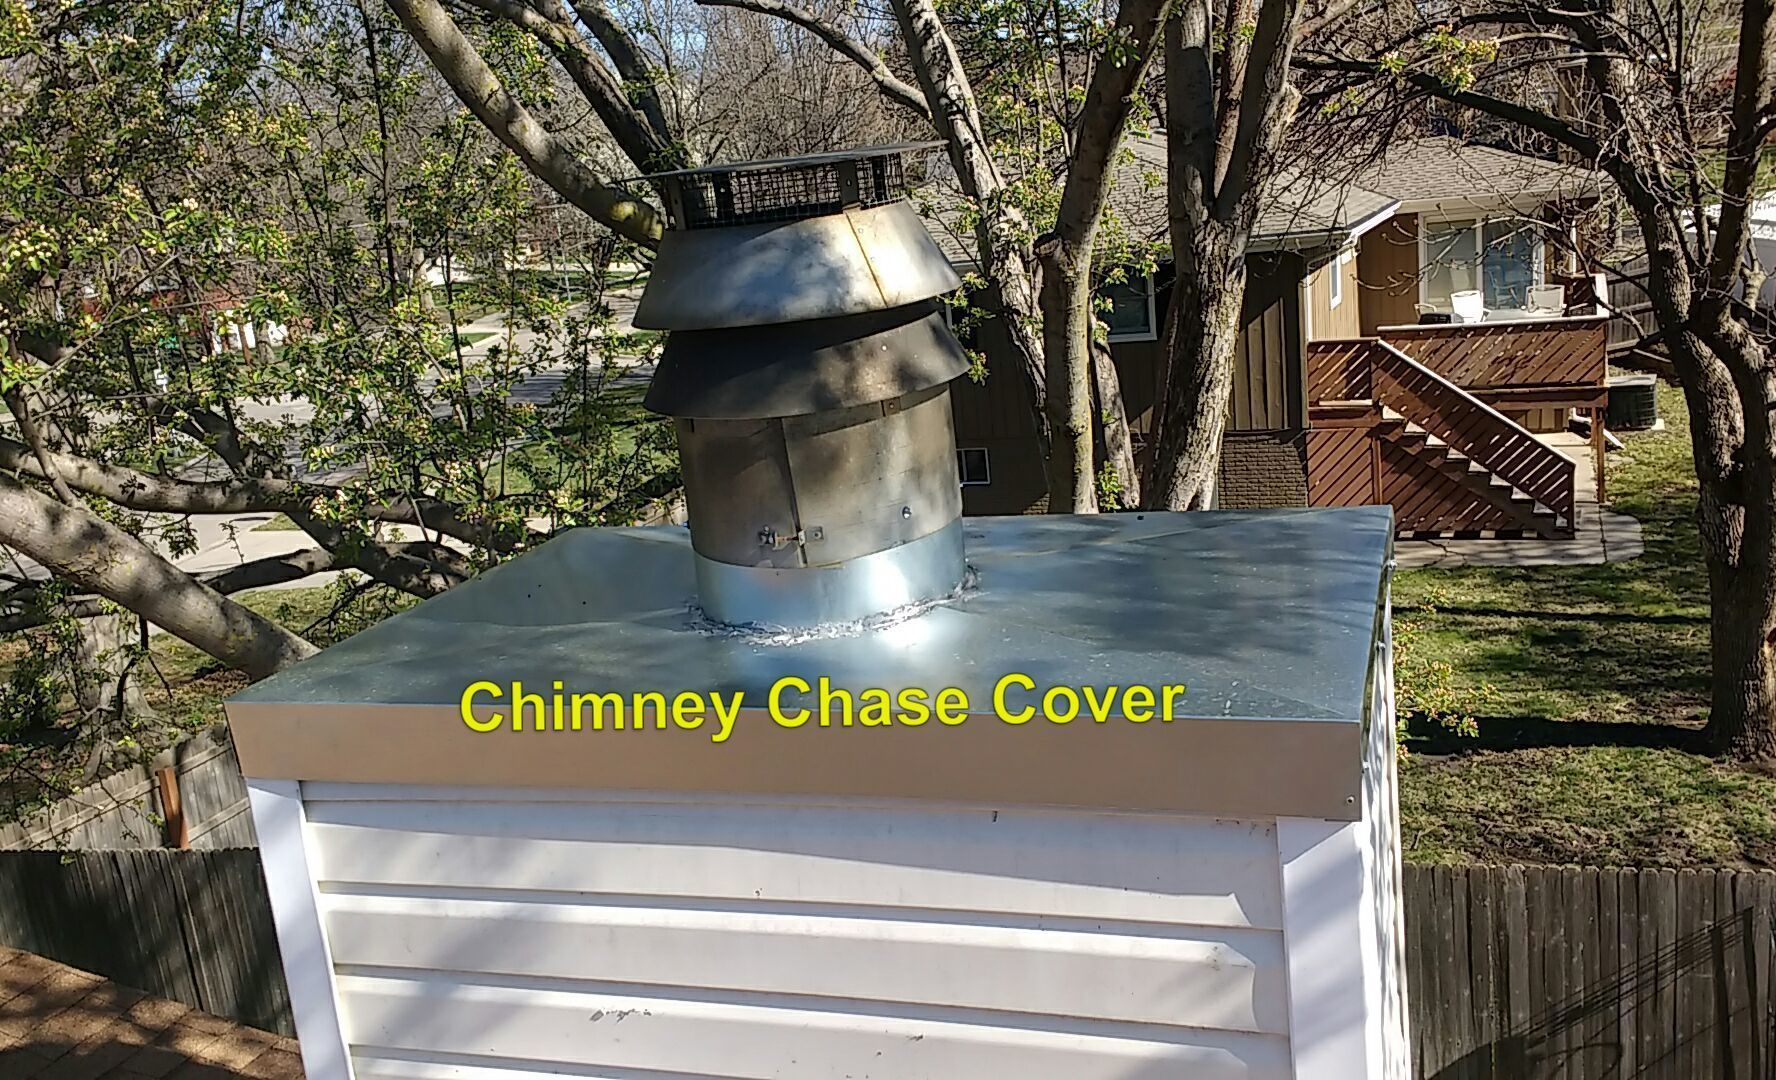 Chimney chase cover